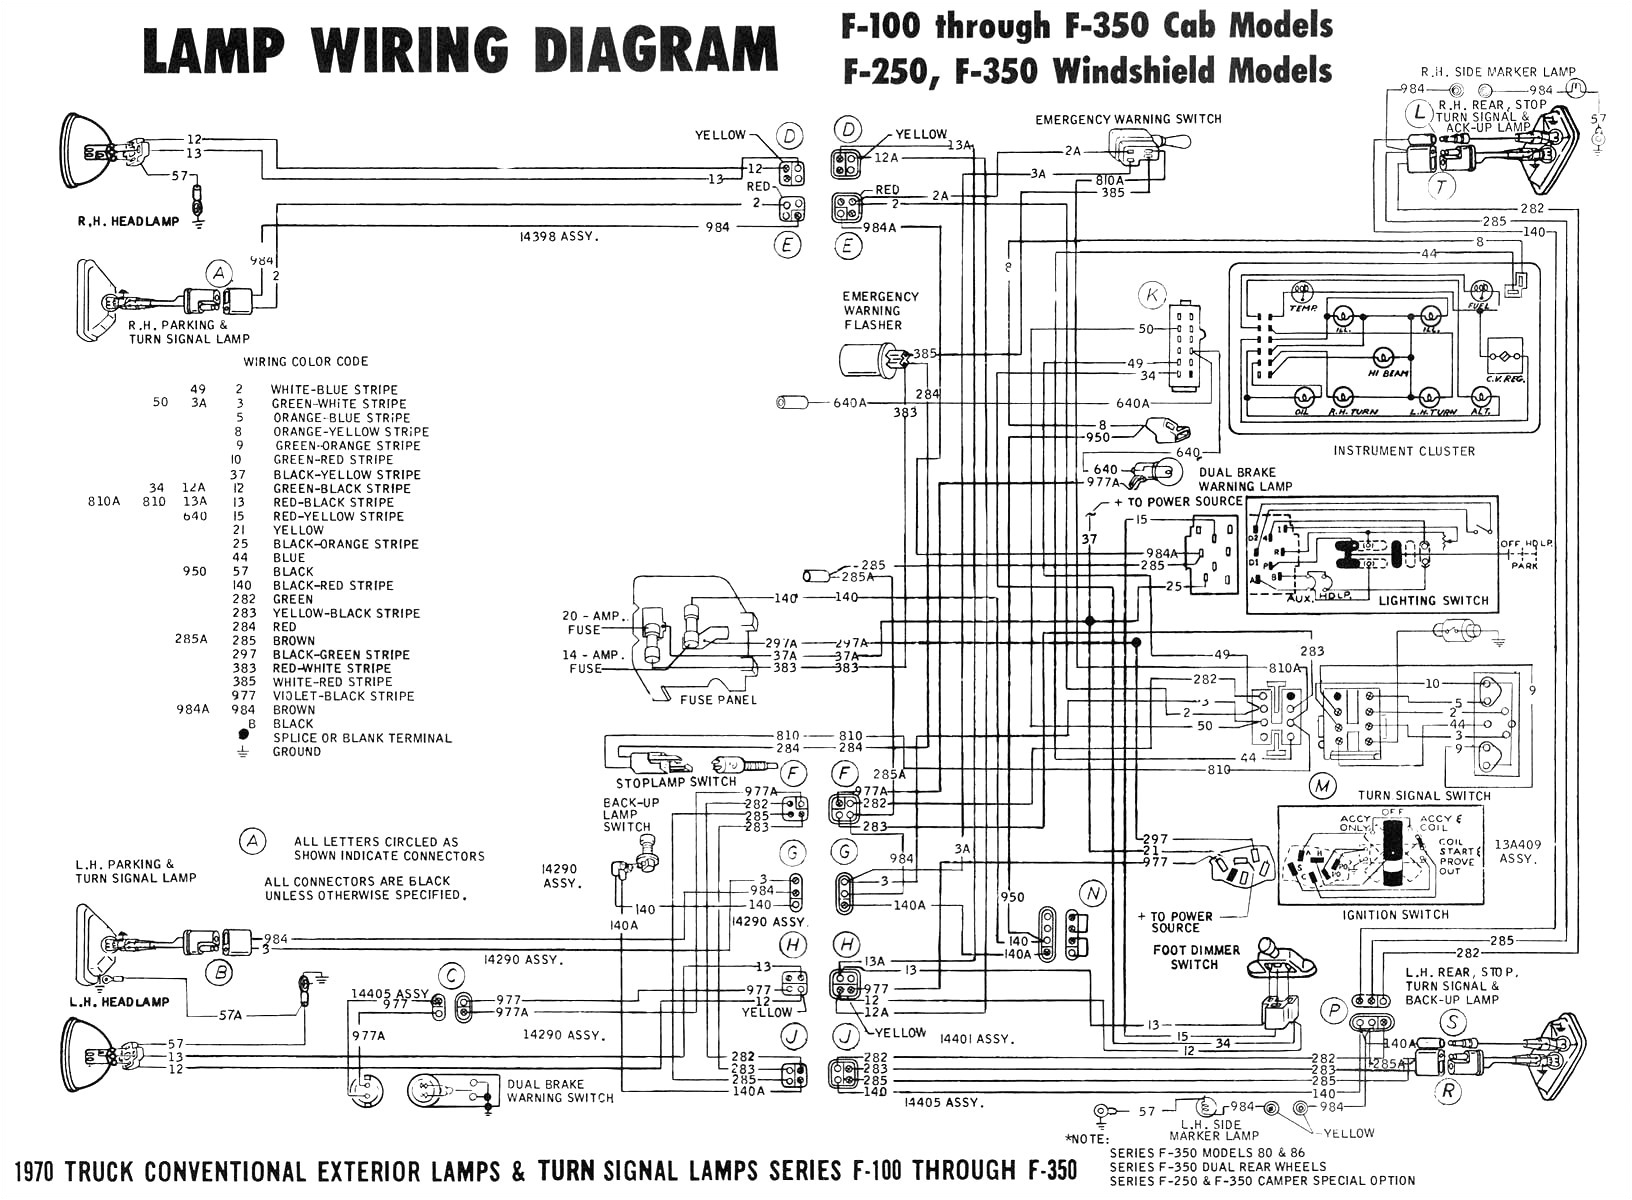 m151a1 wiring diagram wiring diagram page m151a1 wiring diagram wiring diagram sheet m151a1 wiring diagram